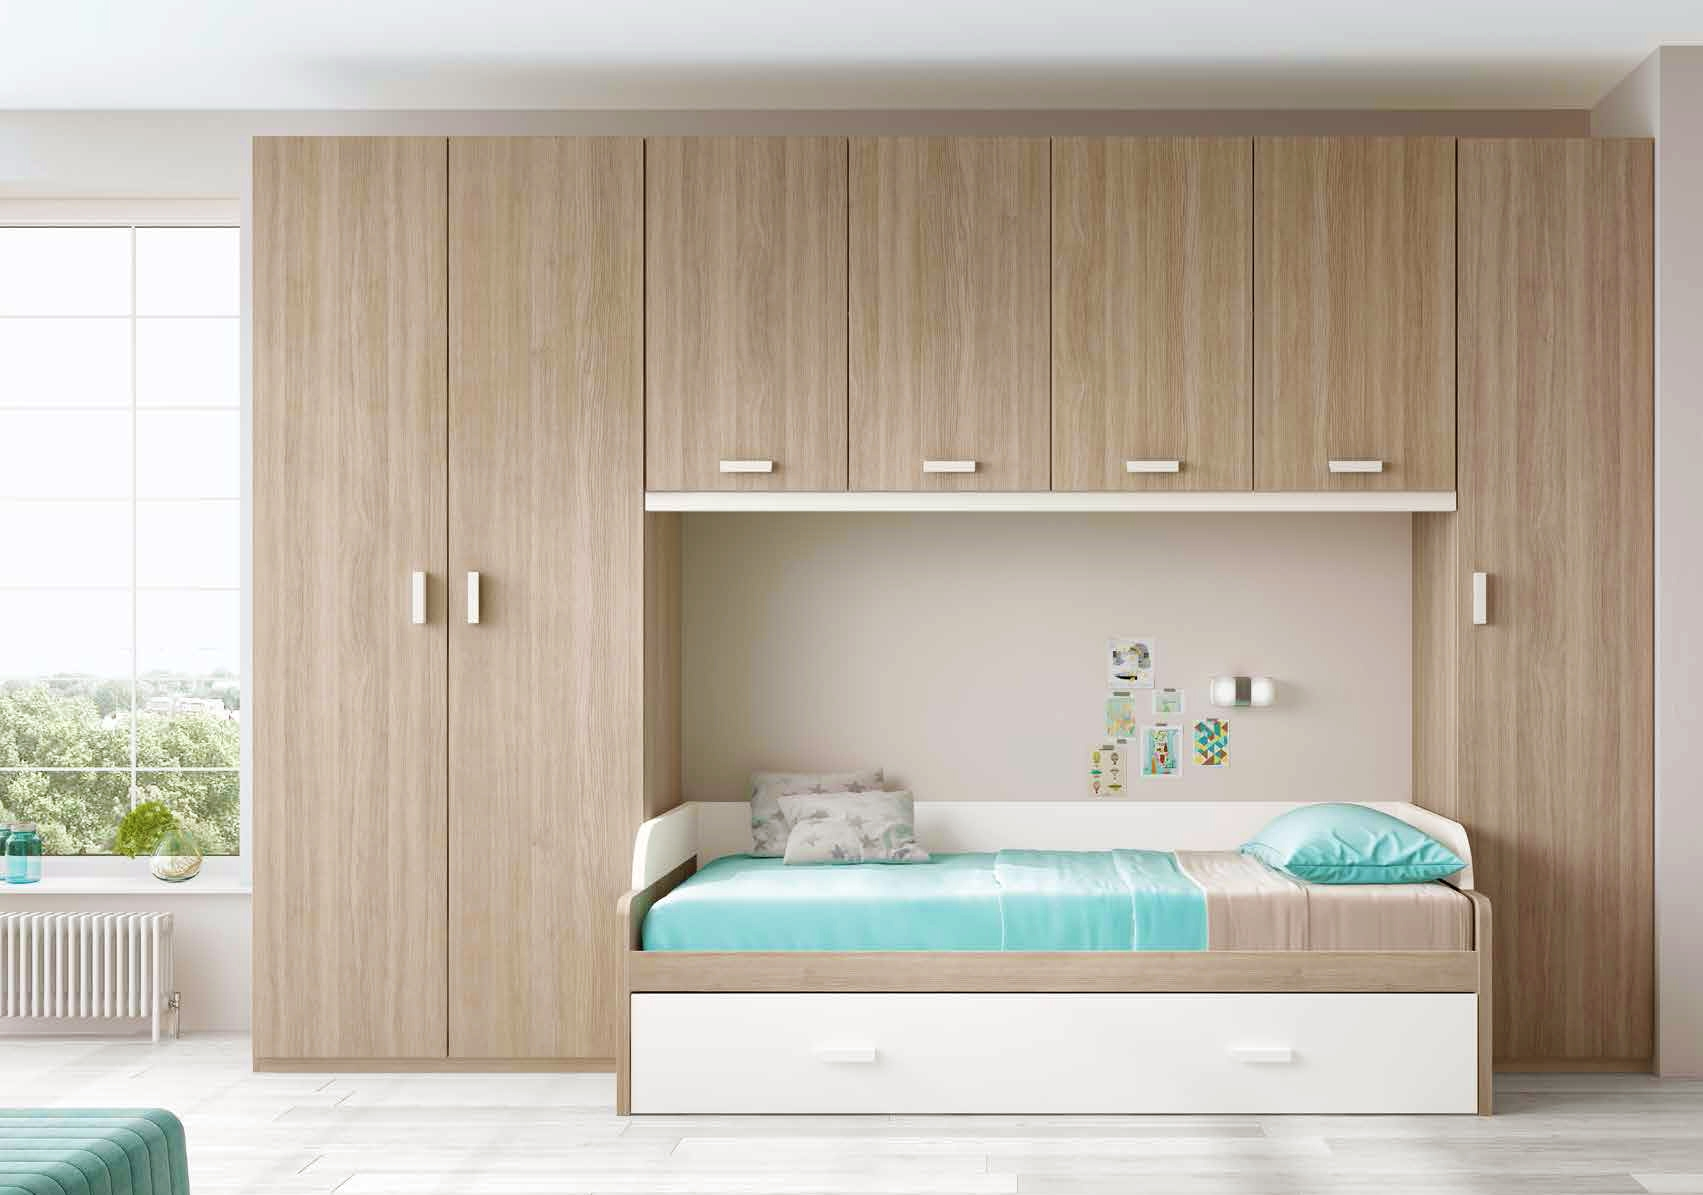 chambre pour ado ultra compacte avec lit gigogne glicerio so nuit. Black Bedroom Furniture Sets. Home Design Ideas